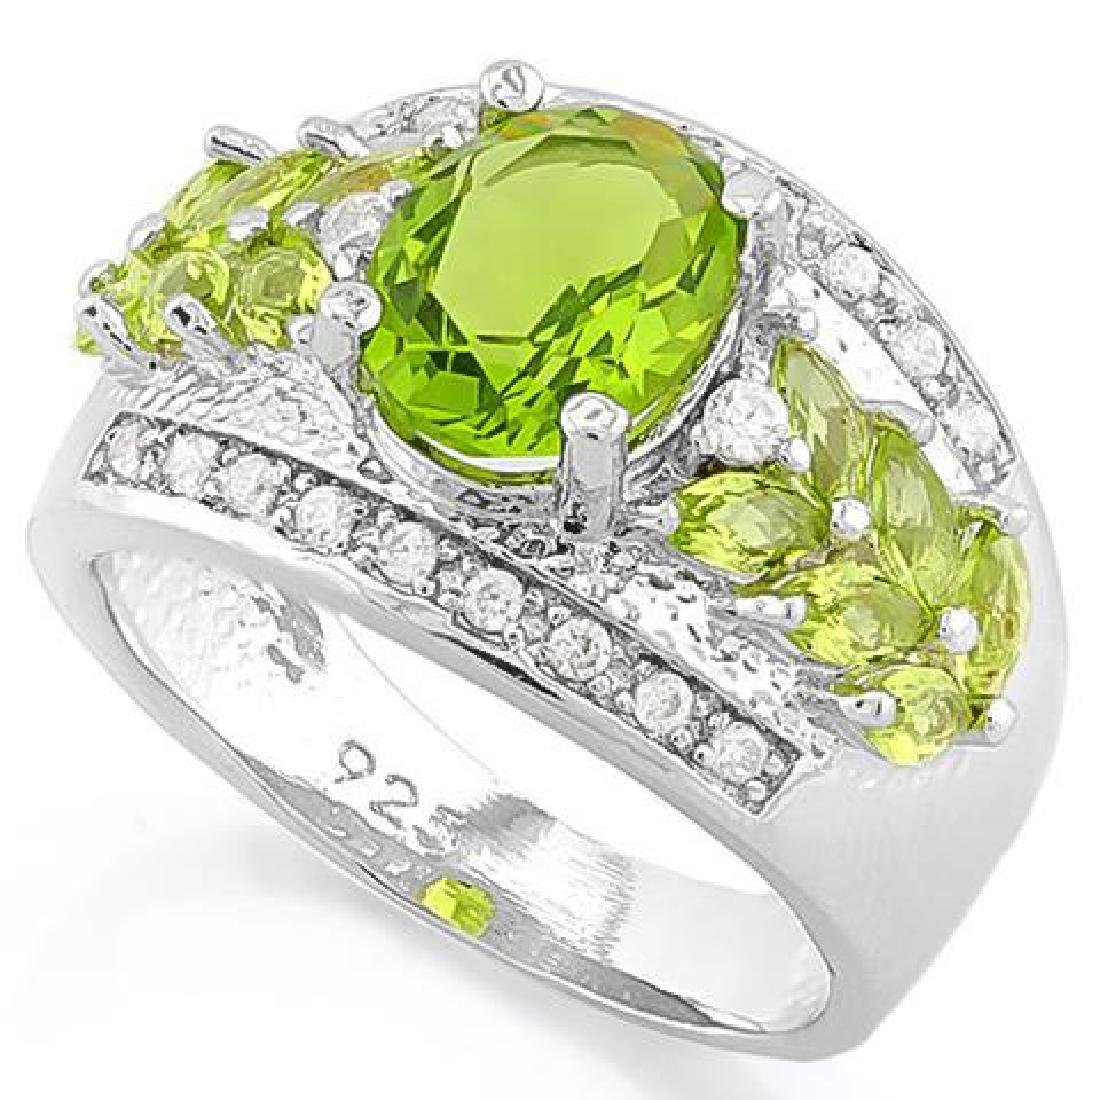 CREATED PERIDOT 925 STERLING SILVER RING